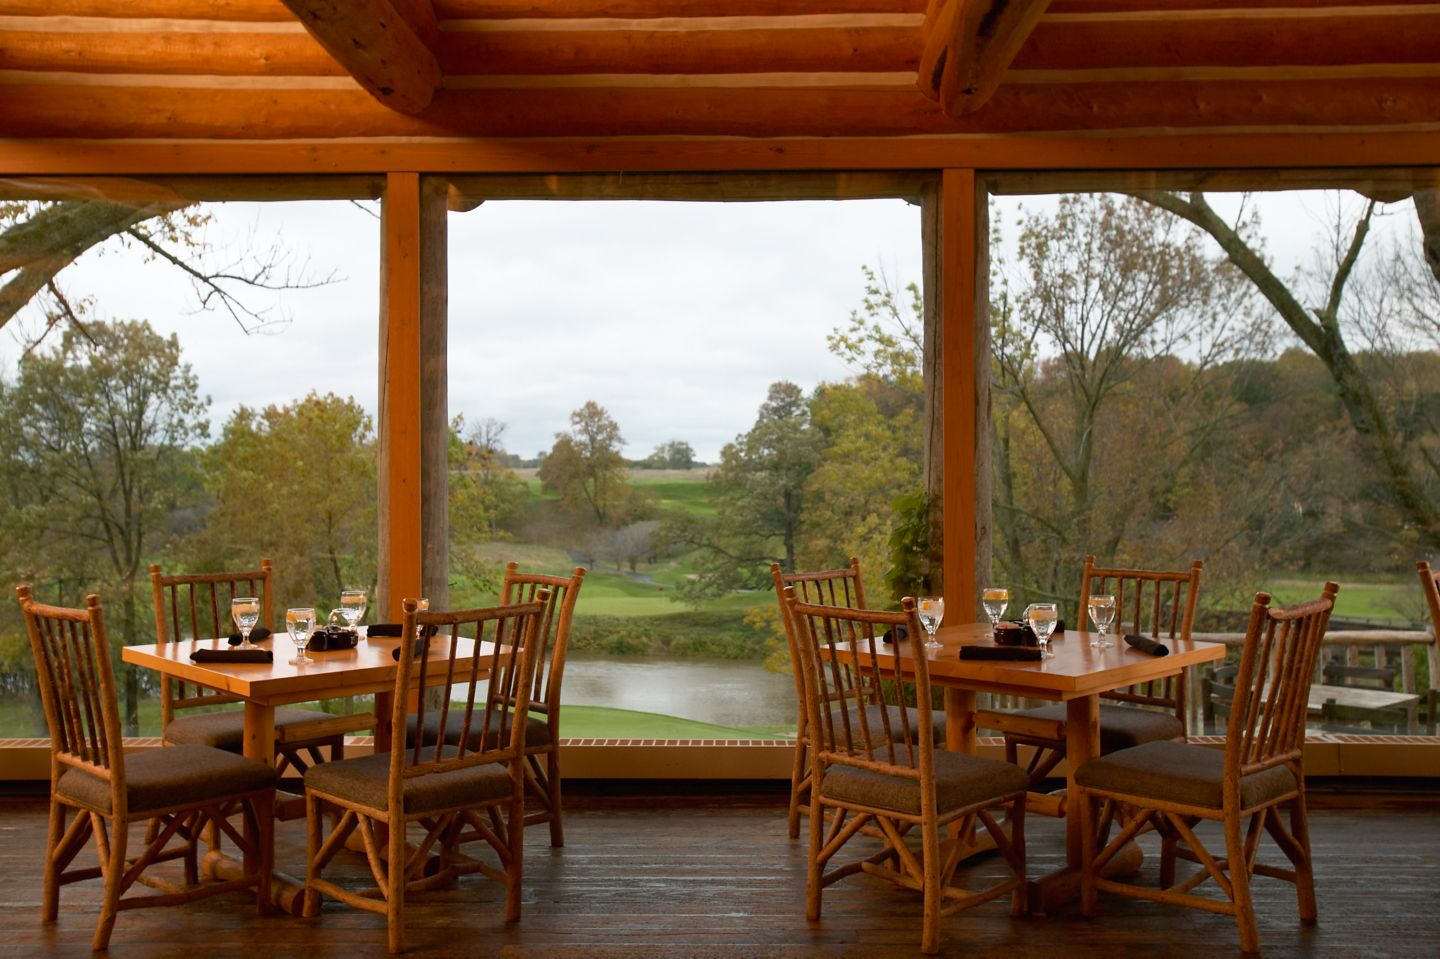 Blackwolf Run Terrace Dining Room